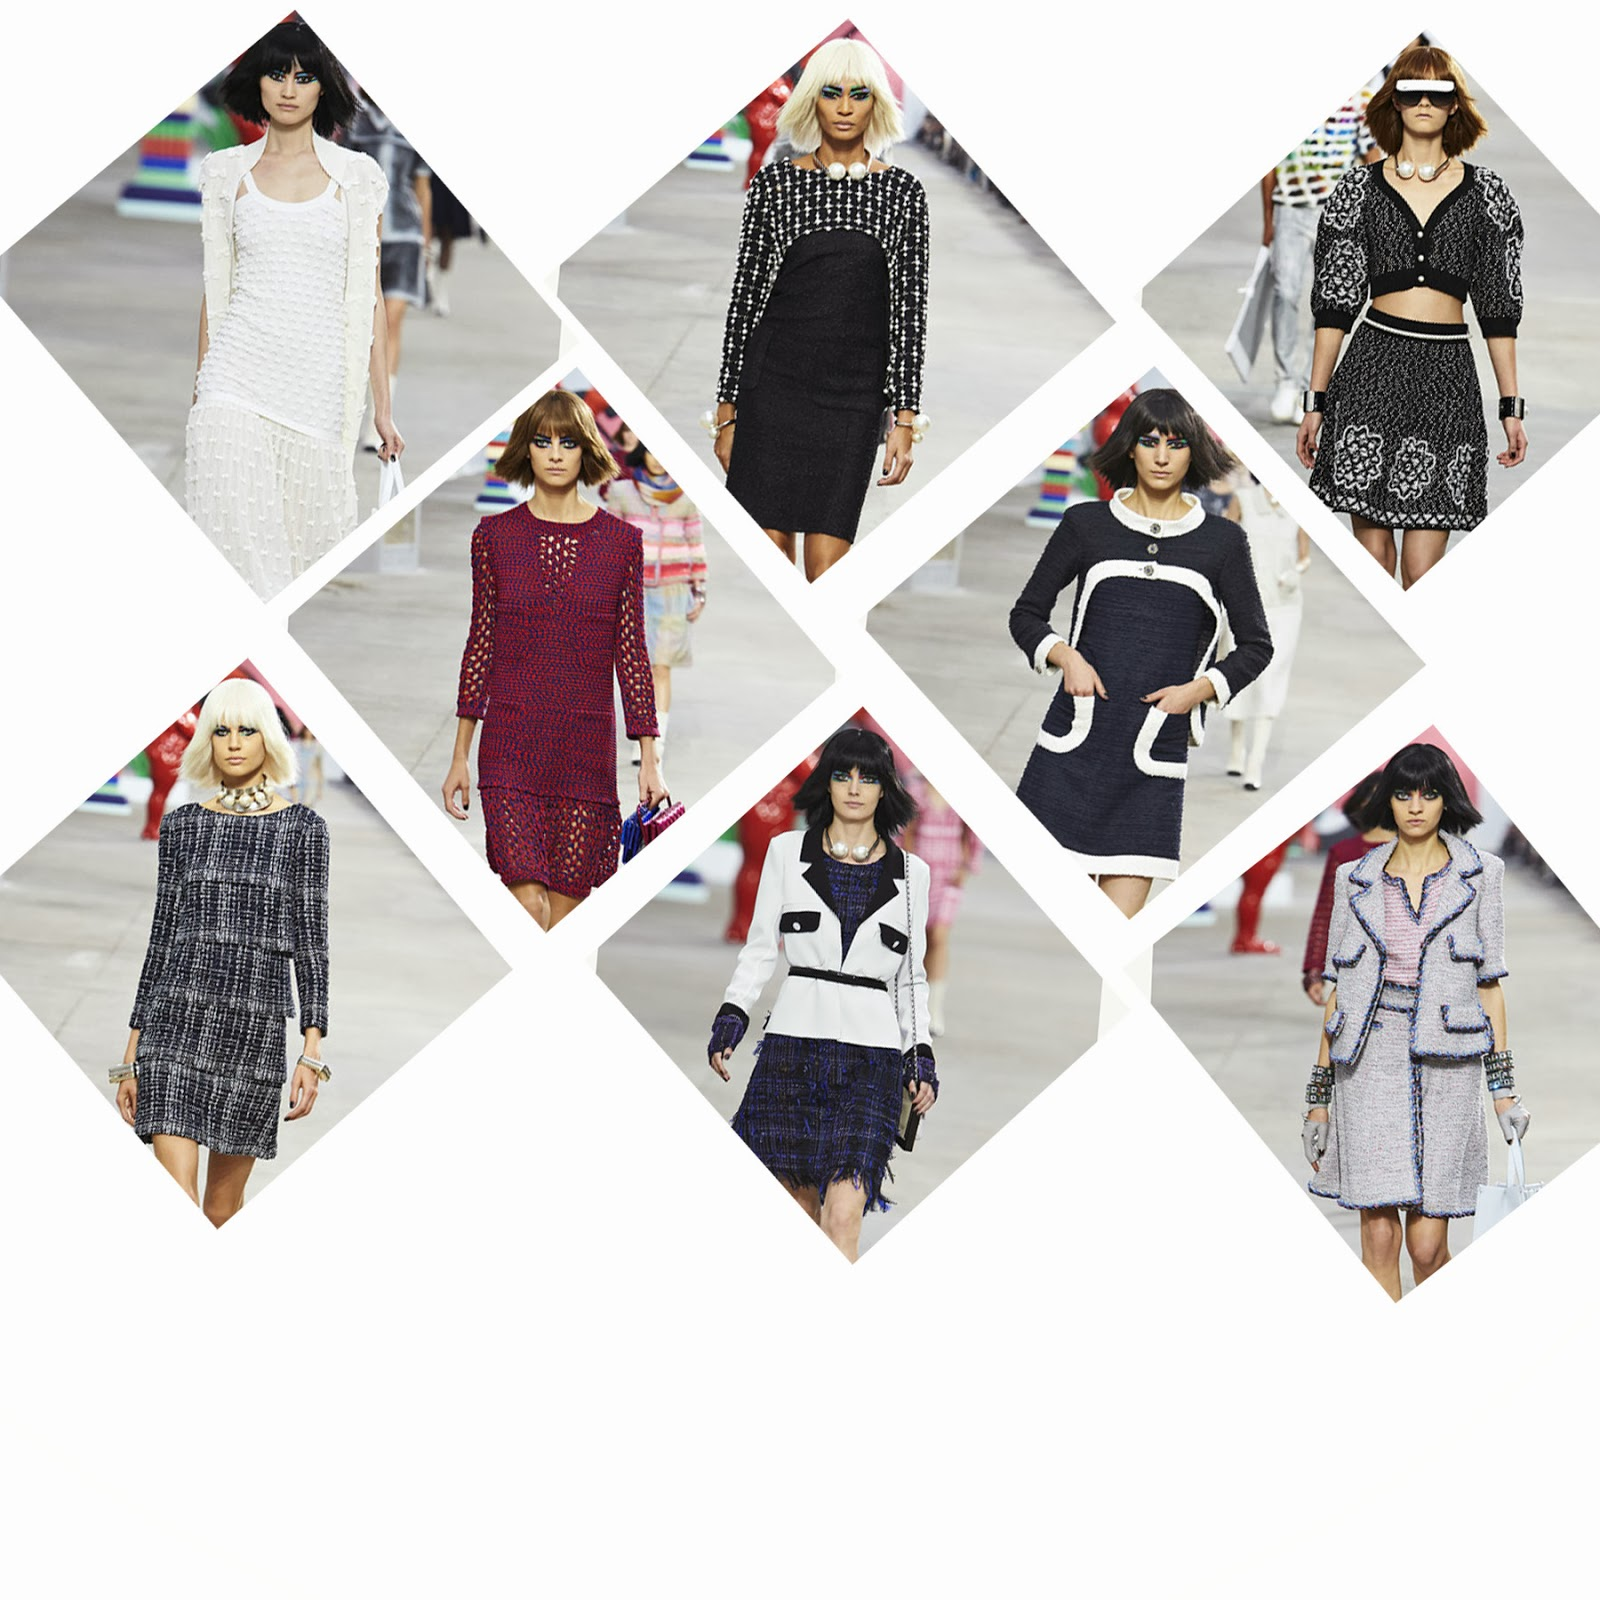 Le Meilleur Chanel Pret A Porter Ss2014 New Gal On The Blog Ce Mois Ci